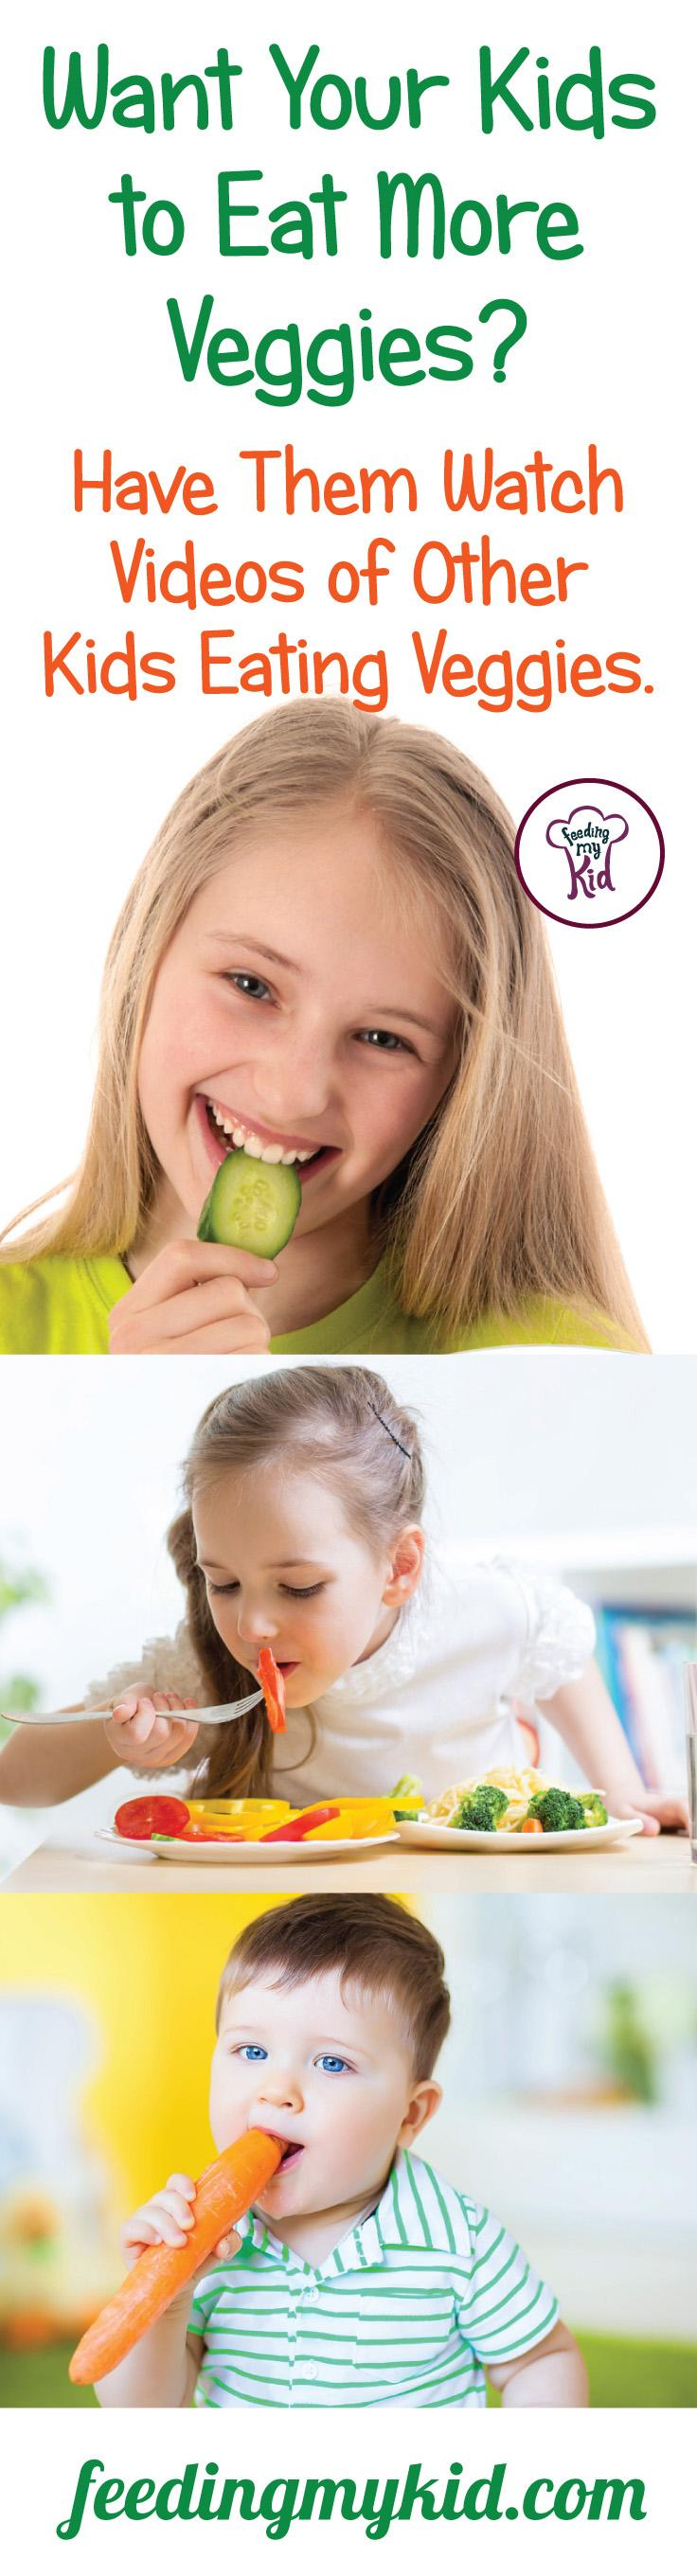 This is a must share! Do you want your kids to develop healthy eating habits? Have them watch other kids eat veggies. Find out how it works here! Stop picky eating in its tracks! Feeding My Kid is a website for parents, filled with all the information you need about how to raise your kids, from healthy tips to nutritious recipes. #parenting #healthyeatinghabits #pickyeating